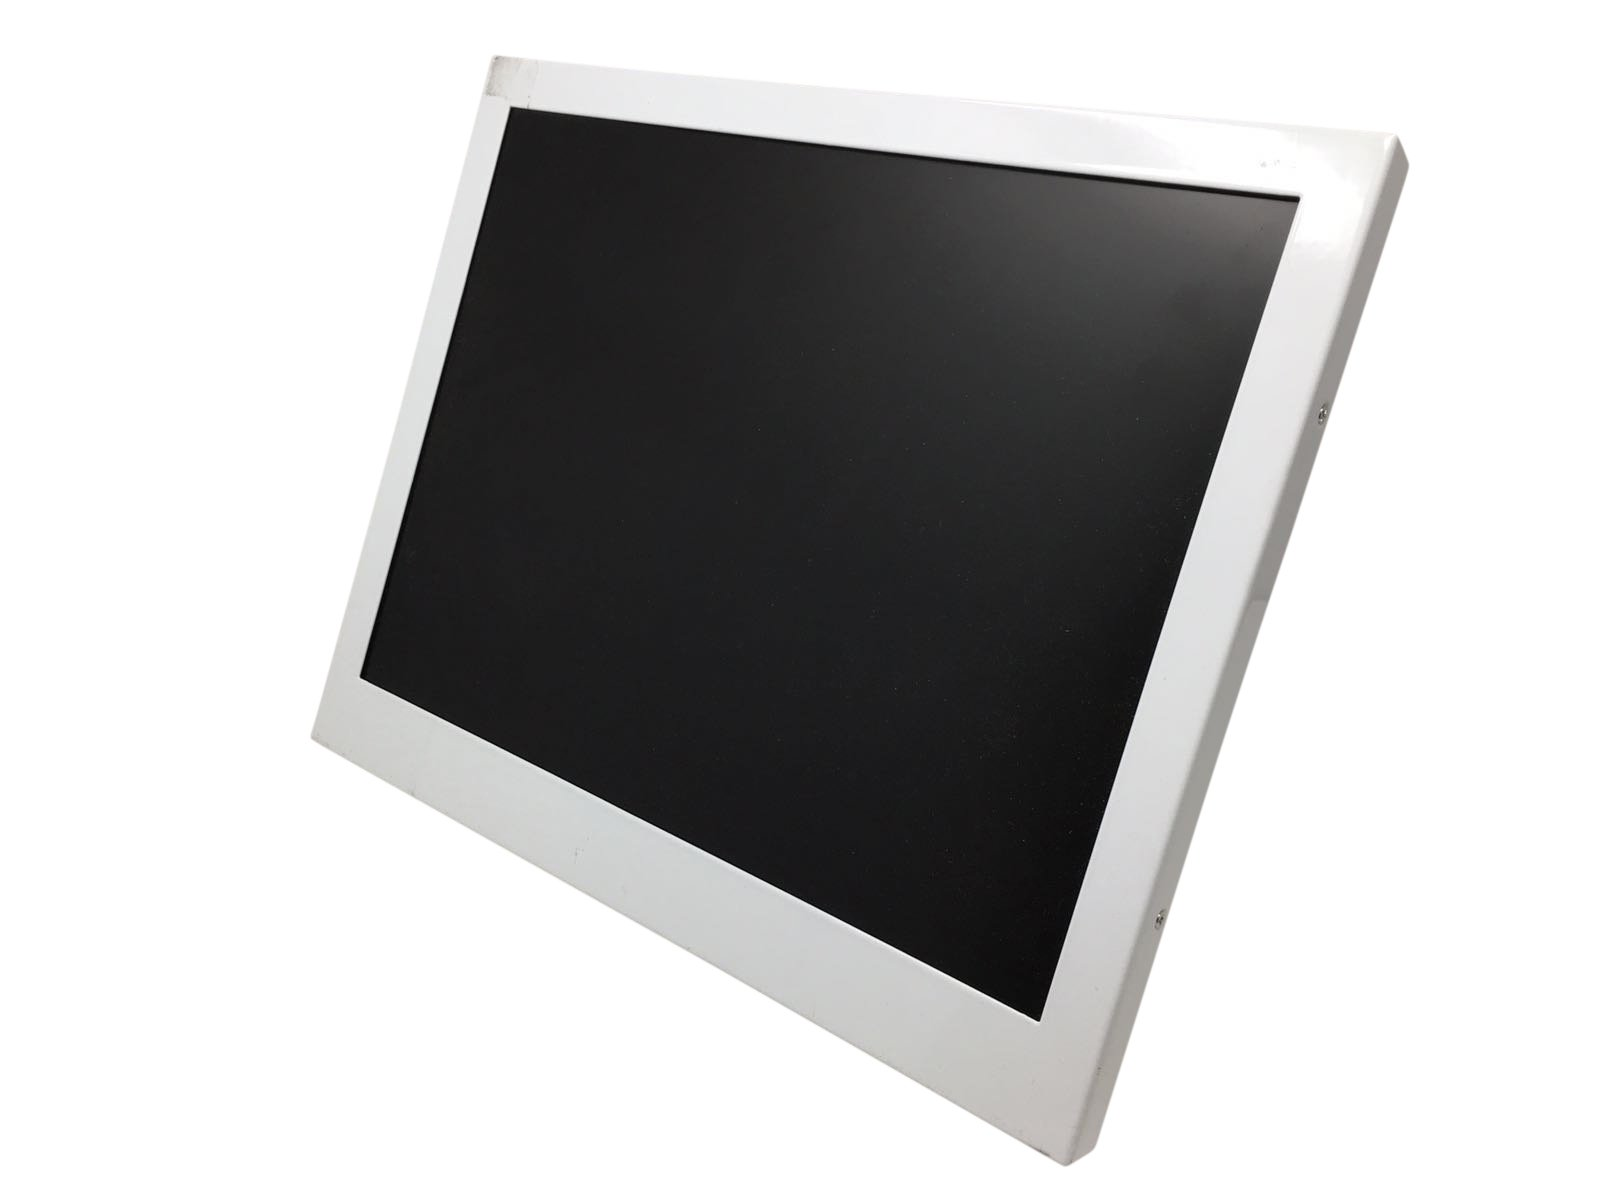 Kenuco White 15'' LED Monitor with HDMI / VGA / Composite / BNC Input by Kenuco